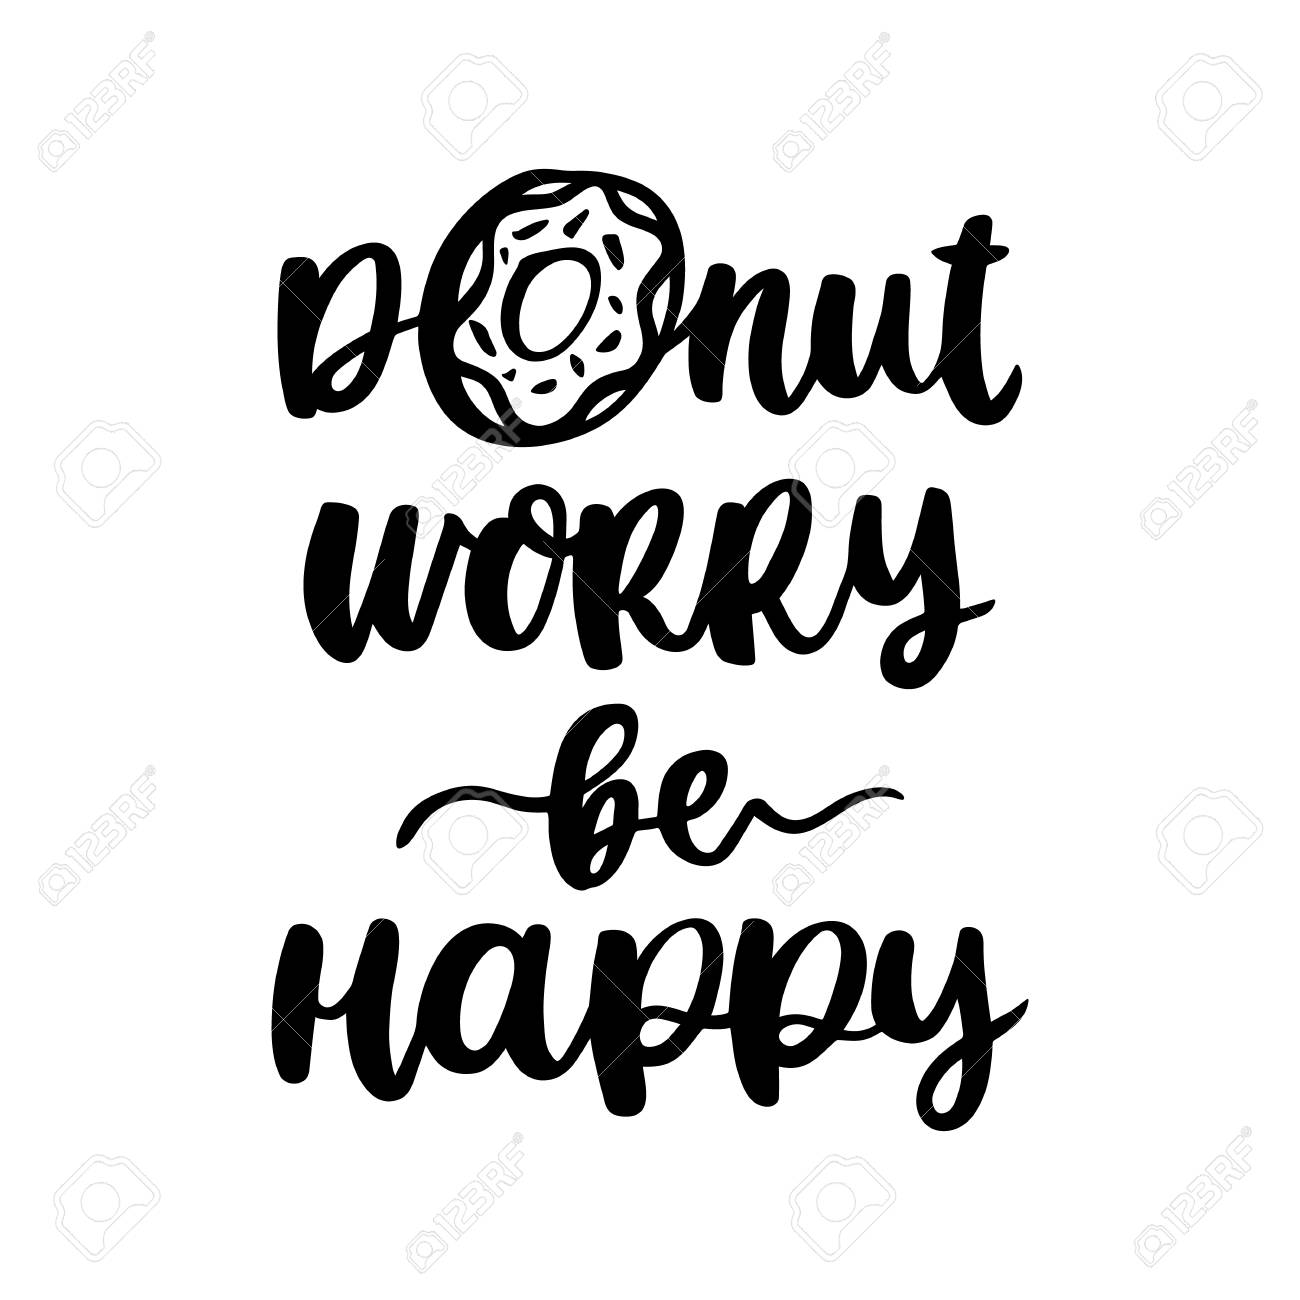 Comic Fun Hand Drawn Lettering Phrase Donut Worry Be Happy